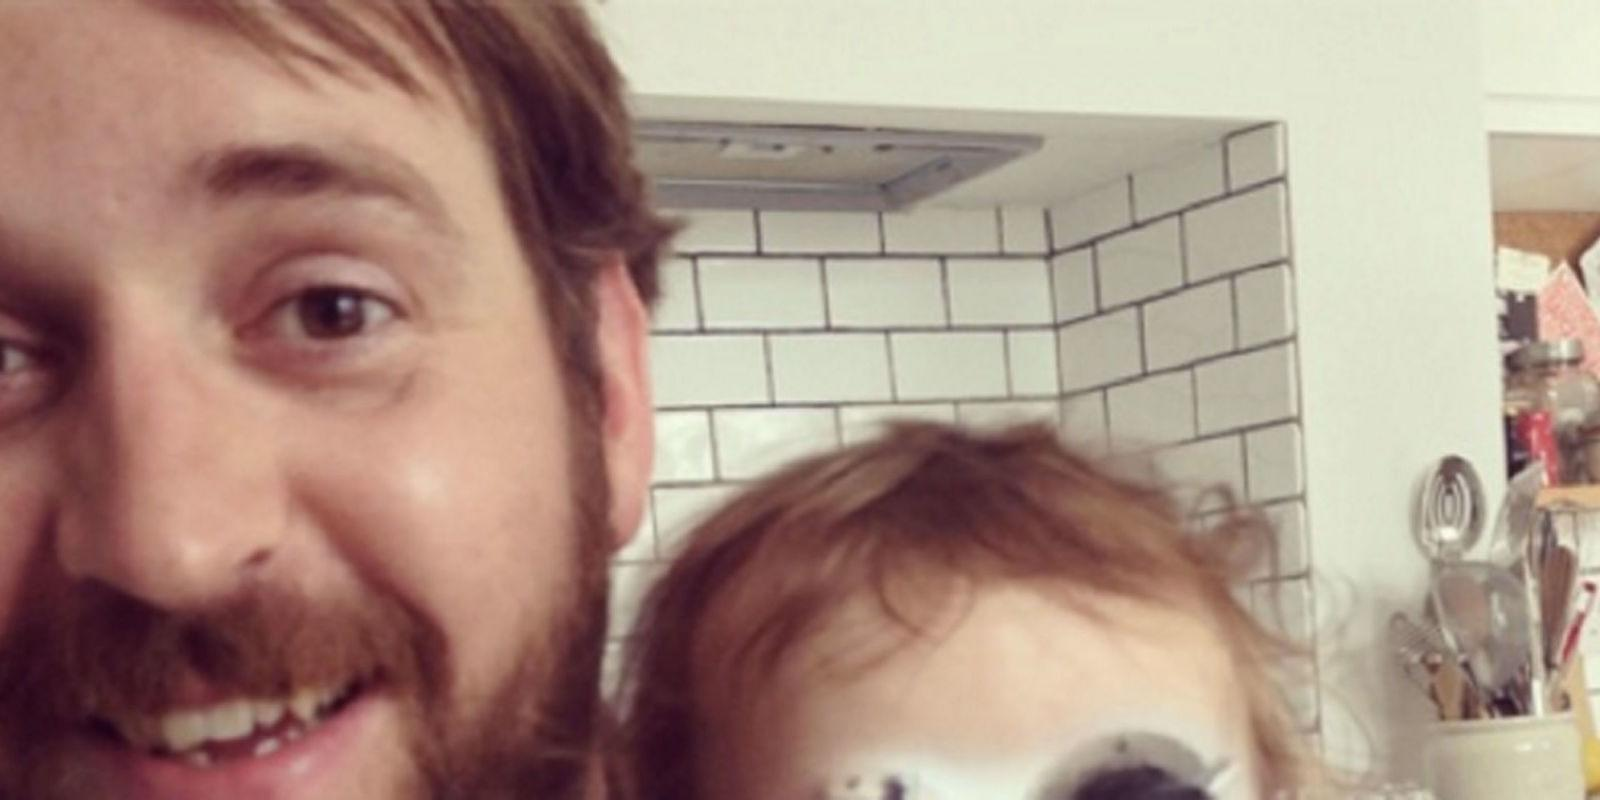 The Longer You Stare at This Father-Daughter Face Swap, the More Hilarious It Gets